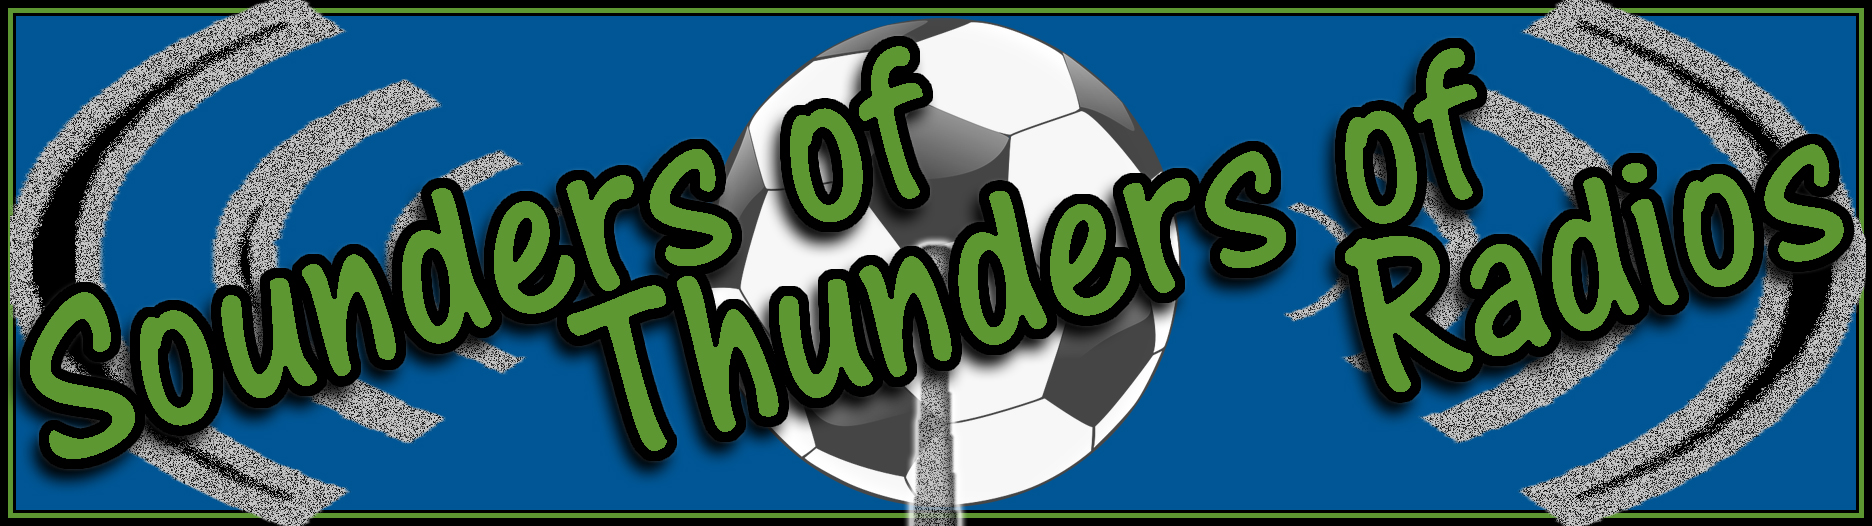 HED - Sounders of Thunders Radio 2.jpg